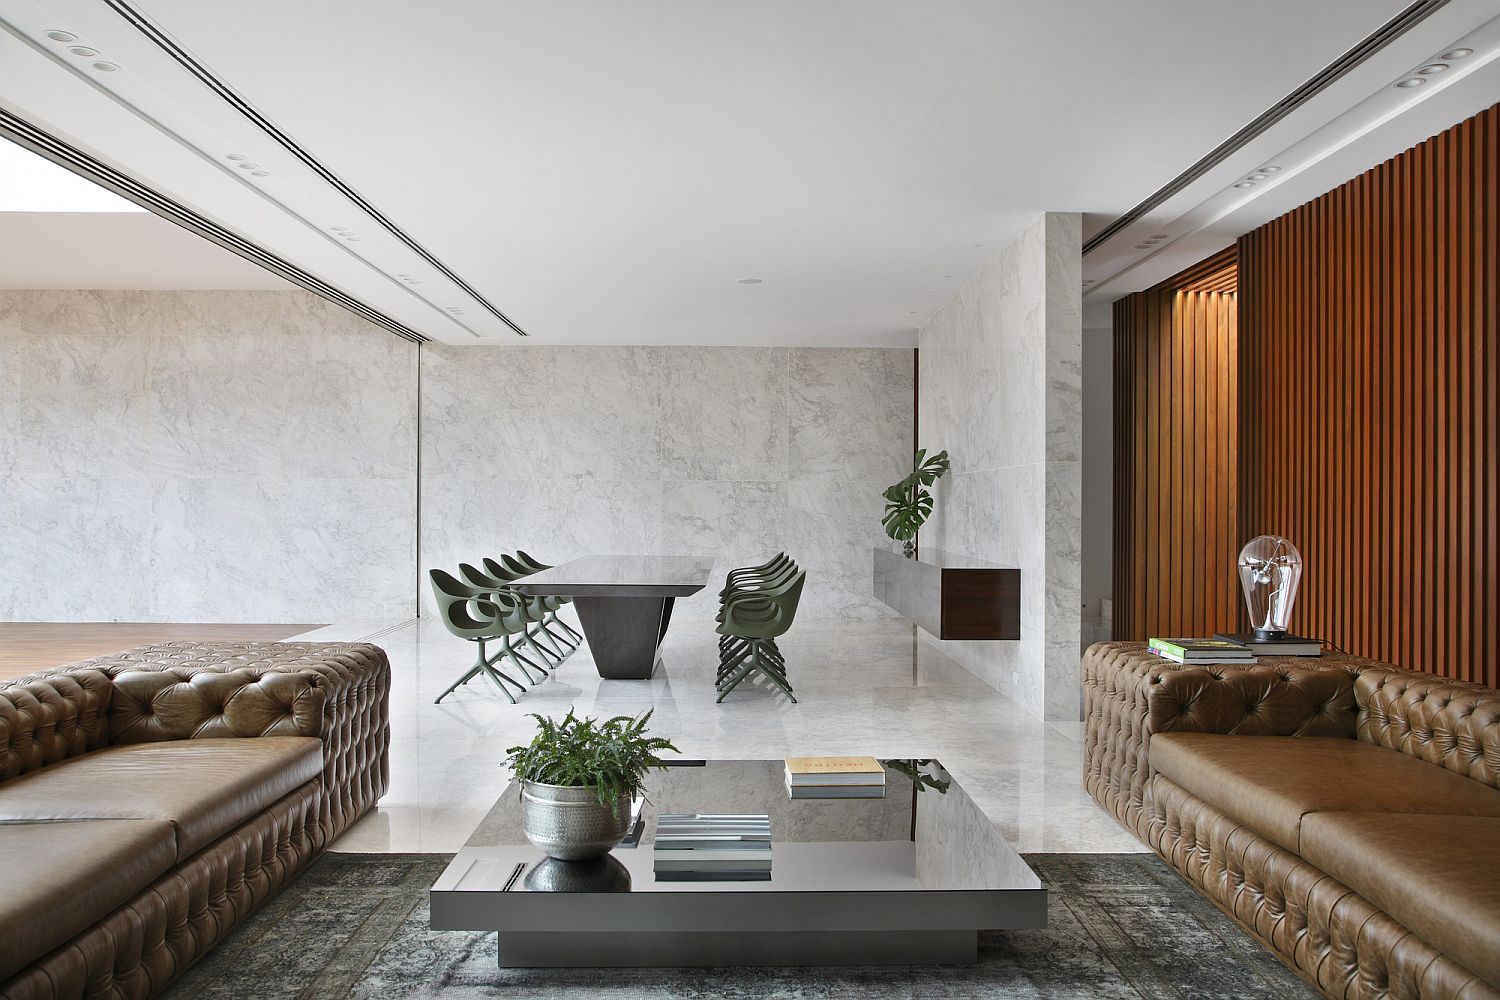 Minimal appeal of the dining are and the concrete walls complements the contemporary style of the living room